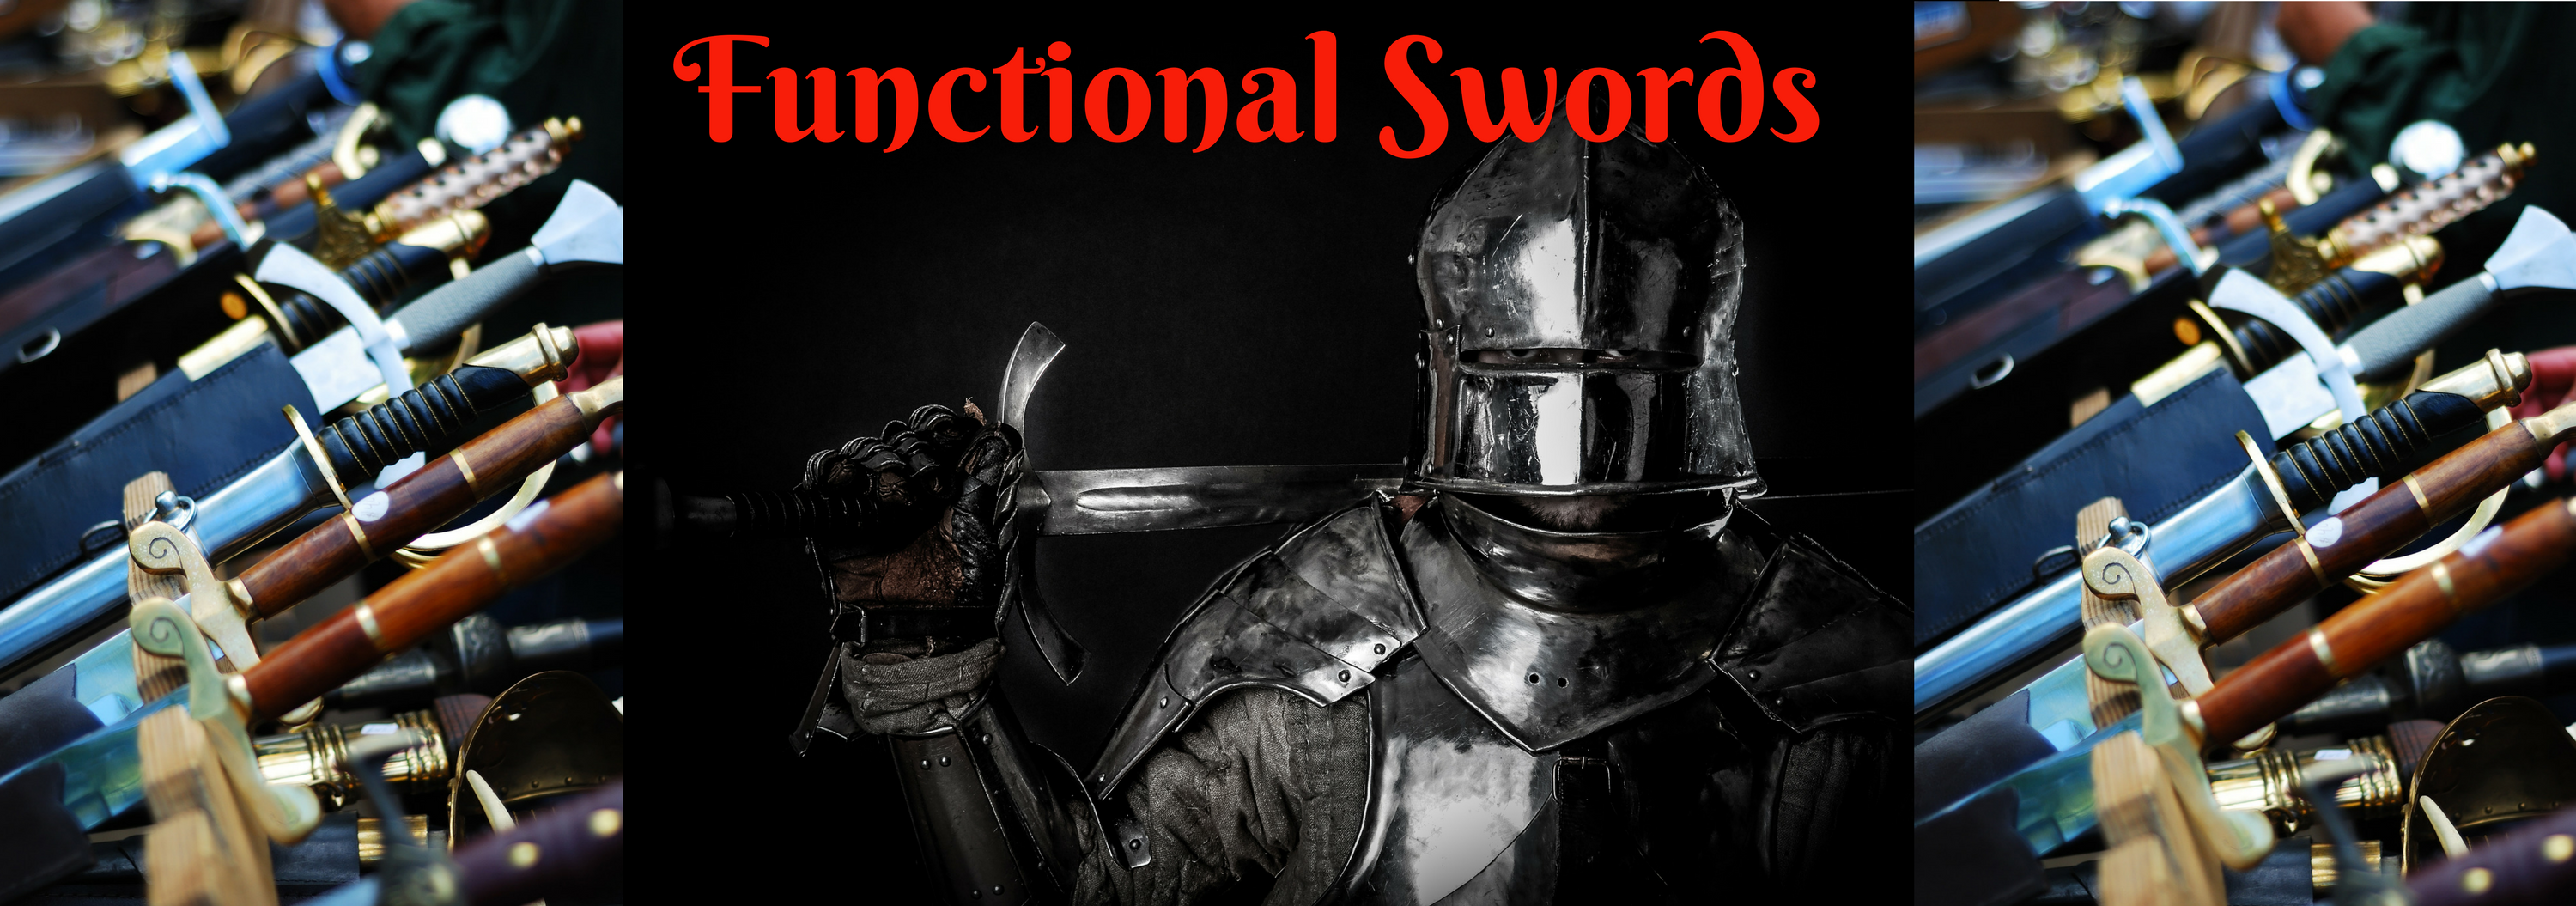 Functional Swords